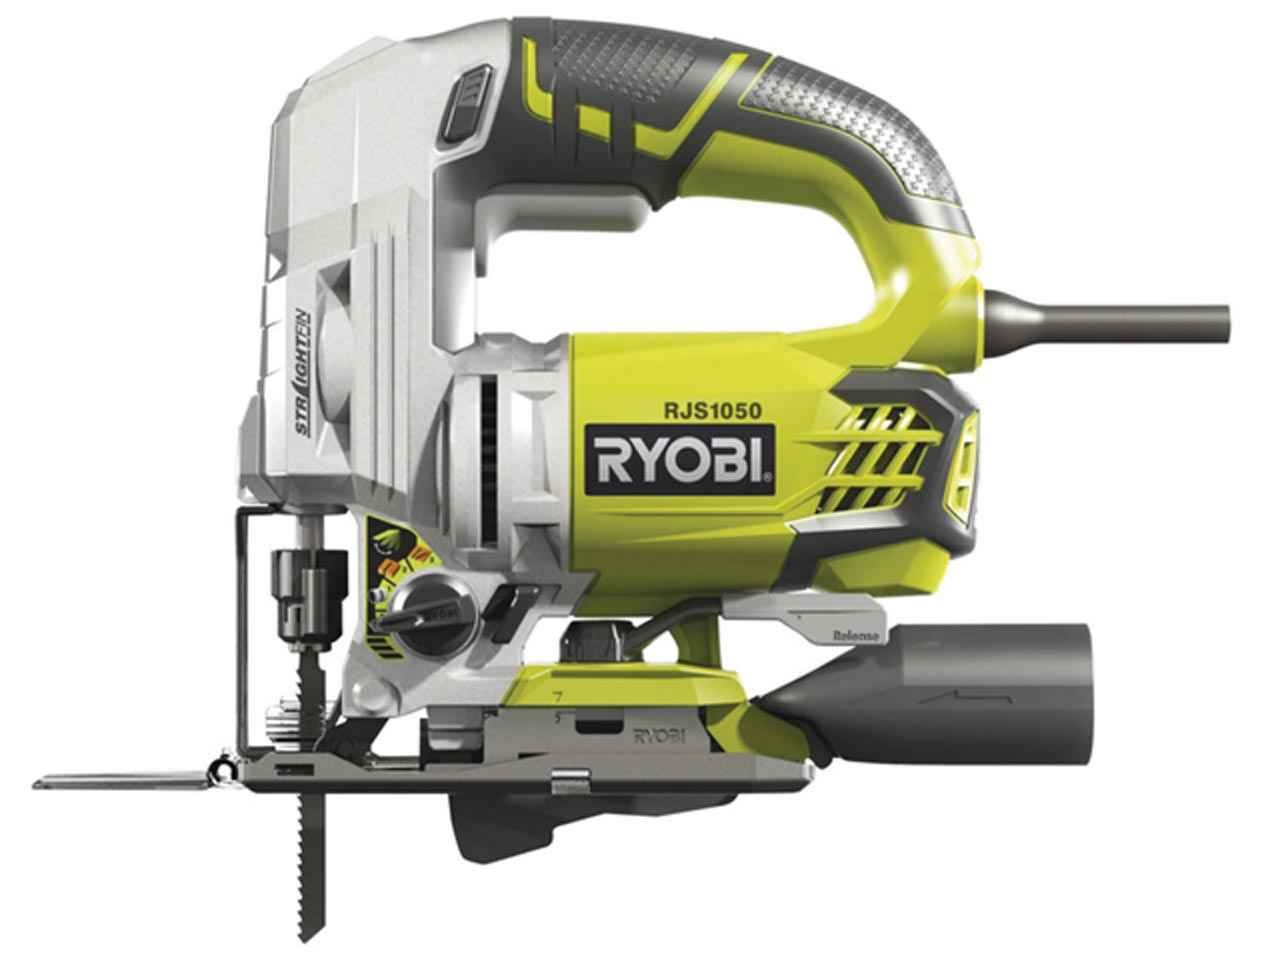 Ryobi rjs1050 k variable speed jigsaw 680 watt 240 volt ryobi authorised reseller keyboard keysfo Choice Image